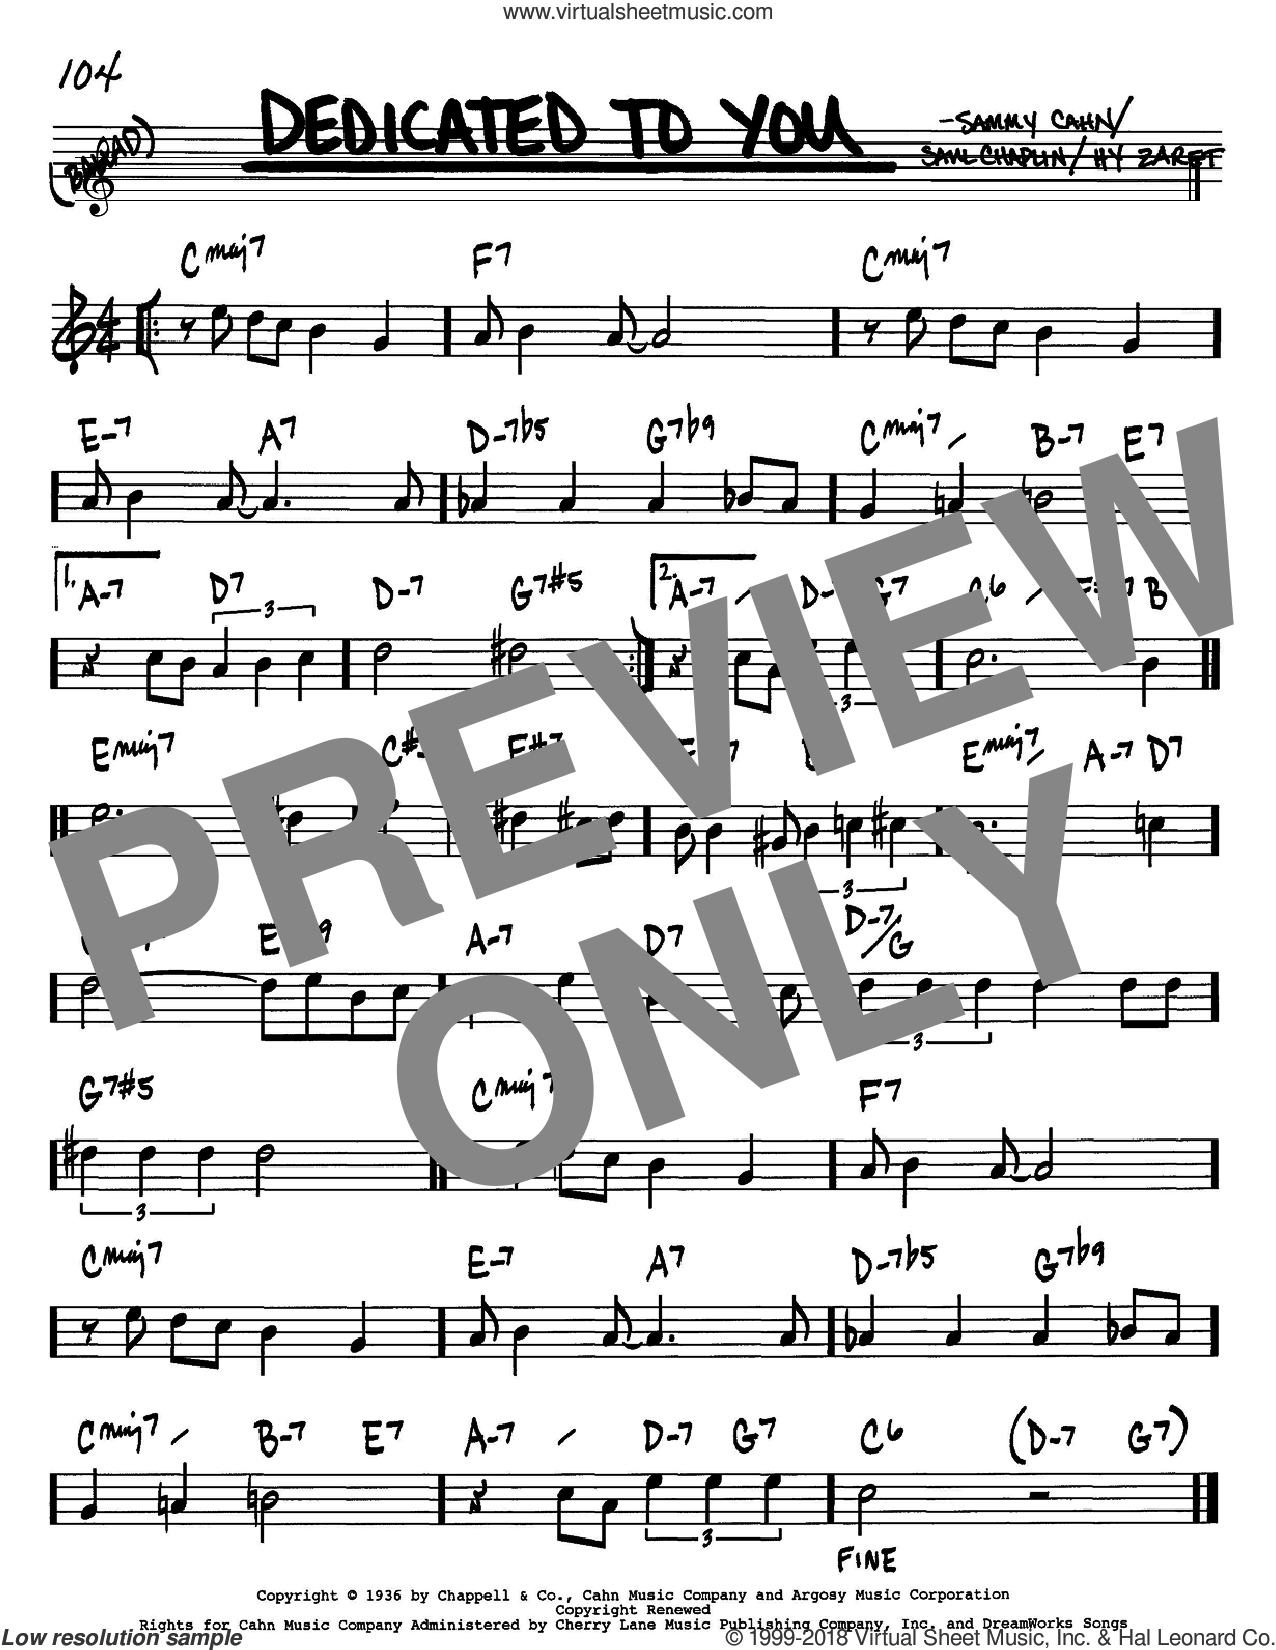 Dedicated To You sheet music for voice and other instruments (Bb) by Sammy Cahn and Saul Chaplin. Score Image Preview.